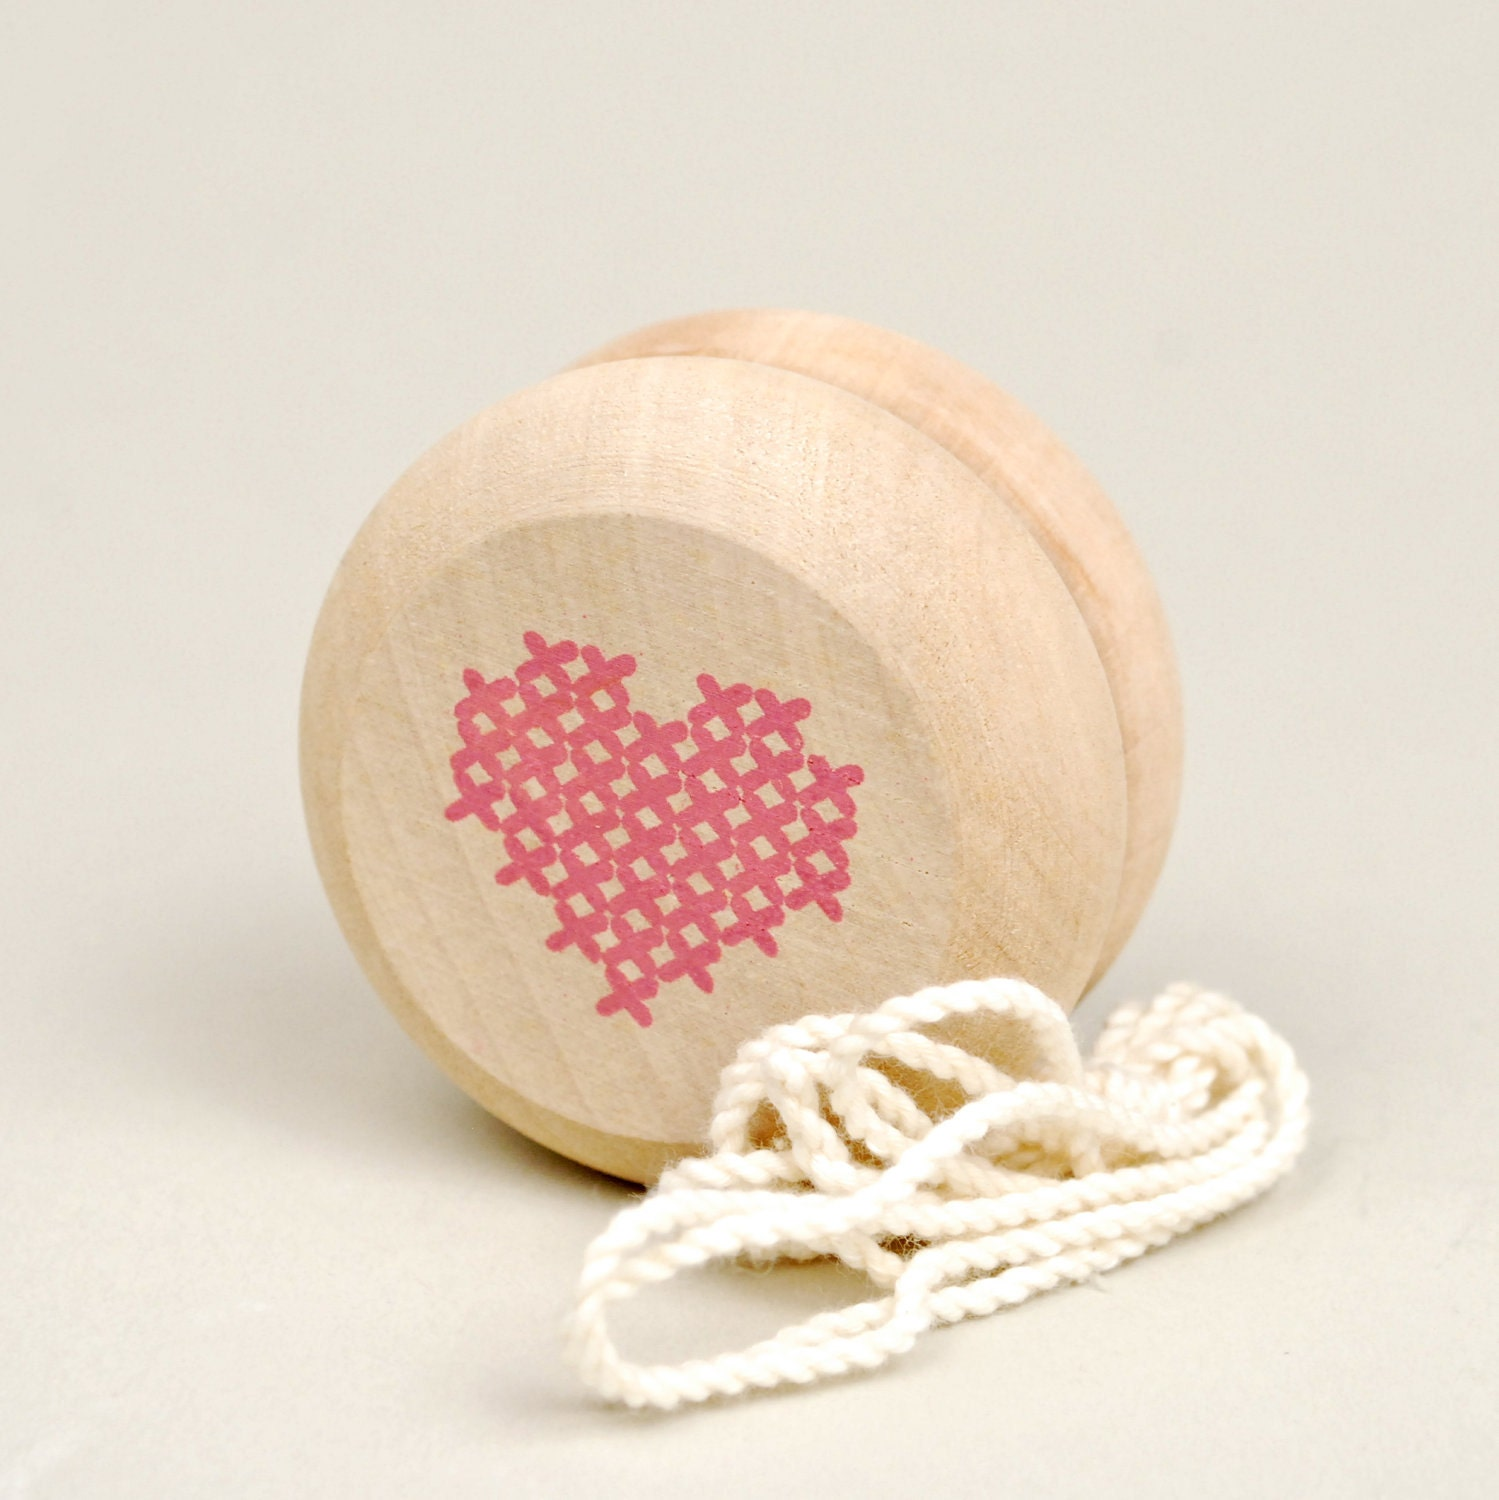 cross my heart yo-yo, blush pink